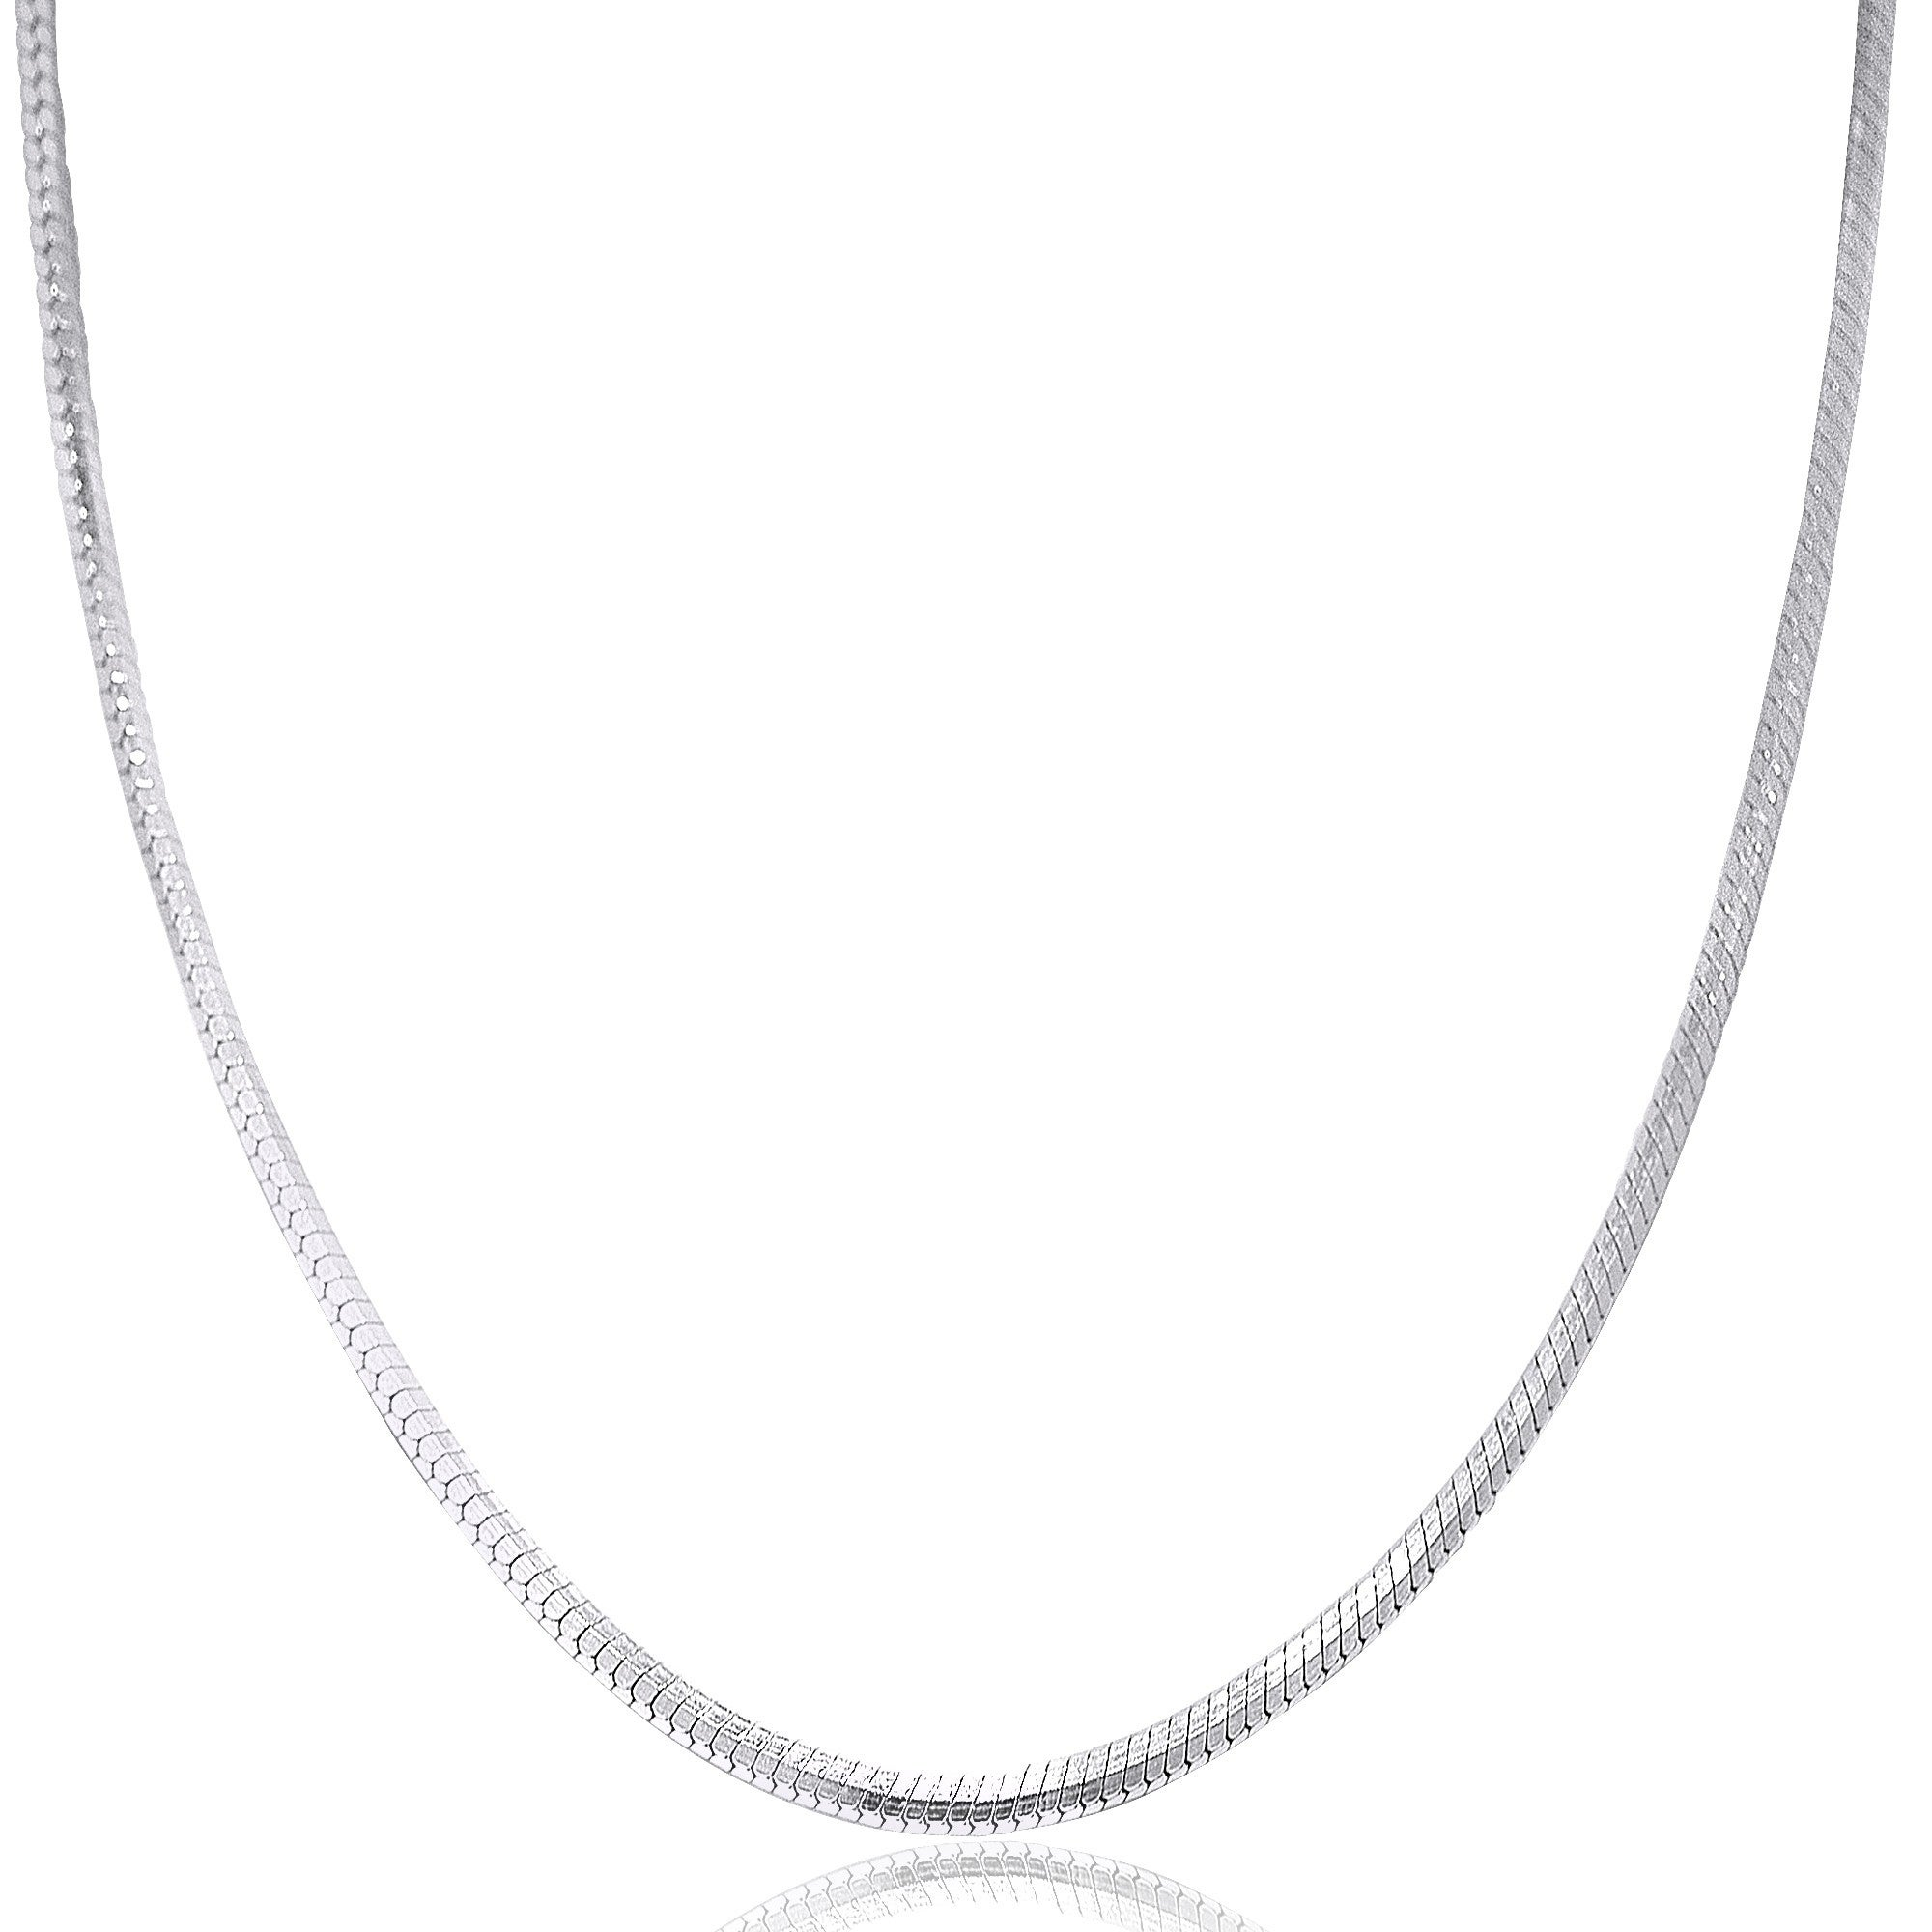 Sterling Silver Real Round Snake 3mm Necklace Chain Genuine Solid .925